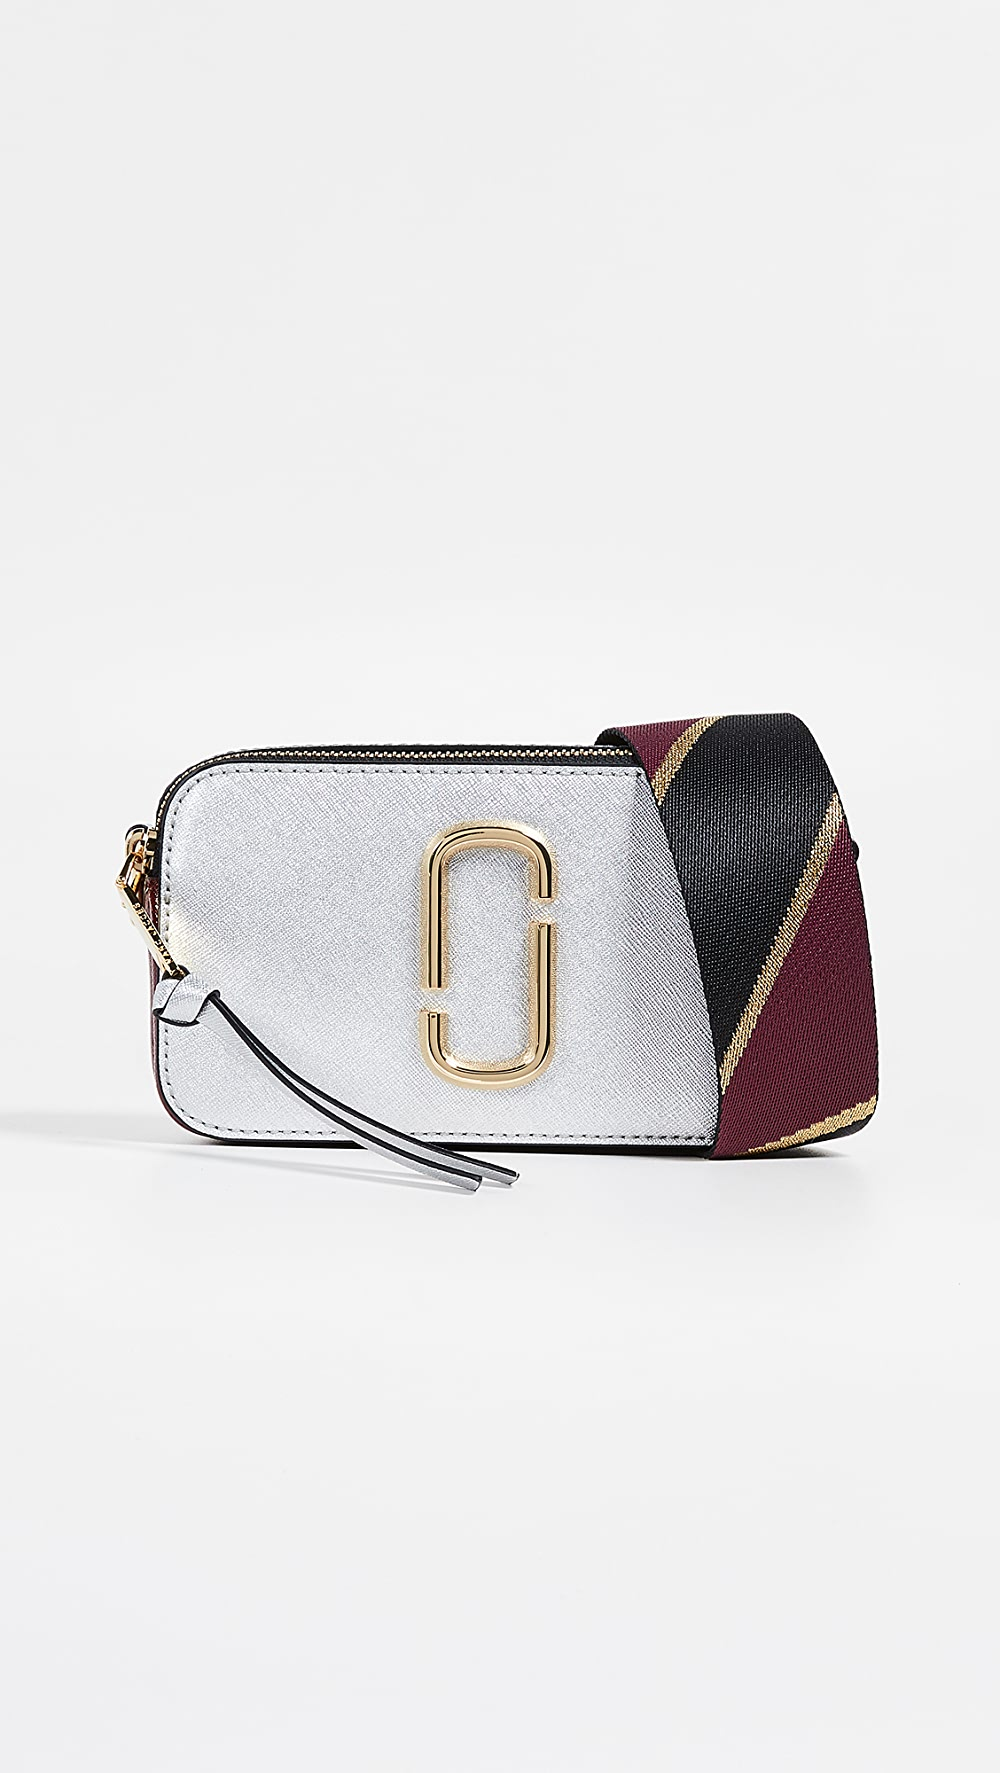 Search For Flights The Marc Jacobs - Snapshot Camera Bag Catalogues Will Be Sent Upon Request